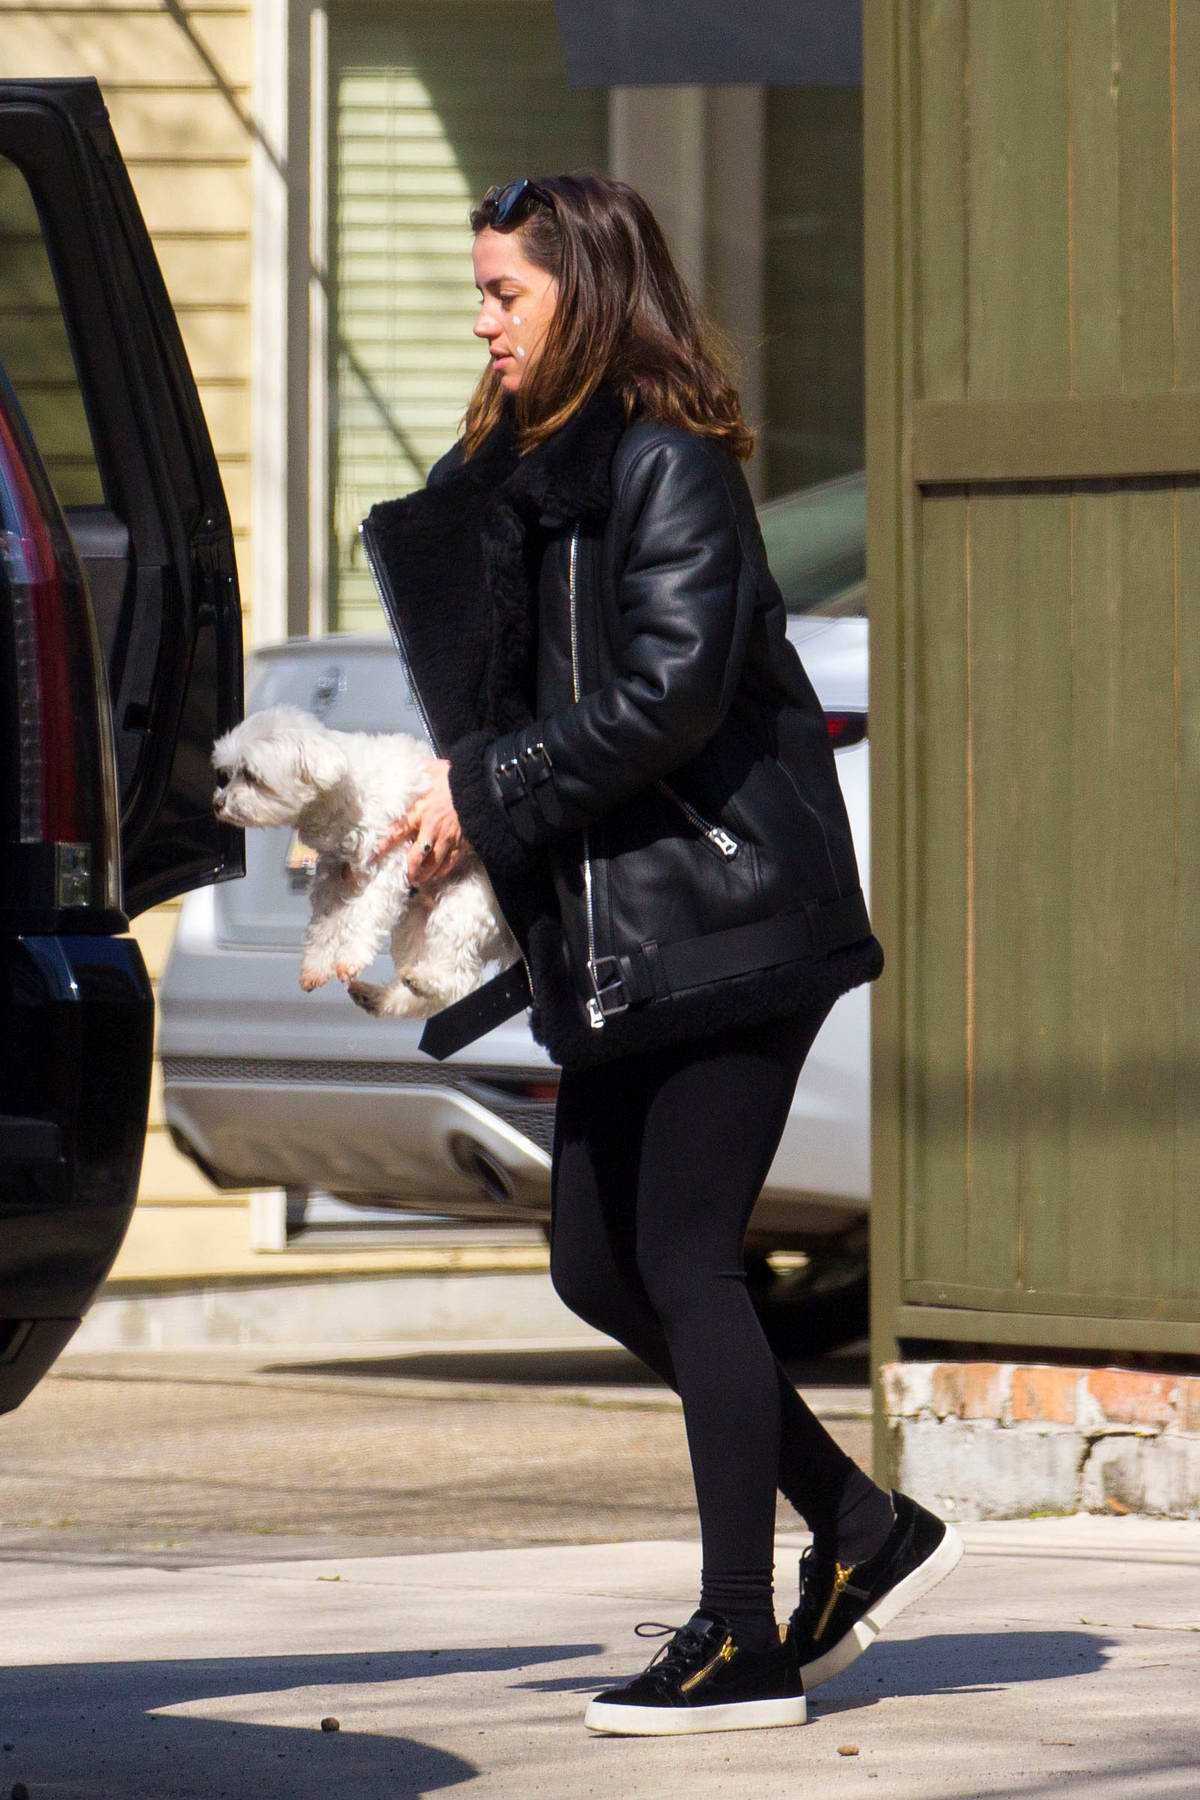 Ana de Armas spotted with her dog and zit cream on her face as she heads to the set of 'Deep Water' in Louisiana